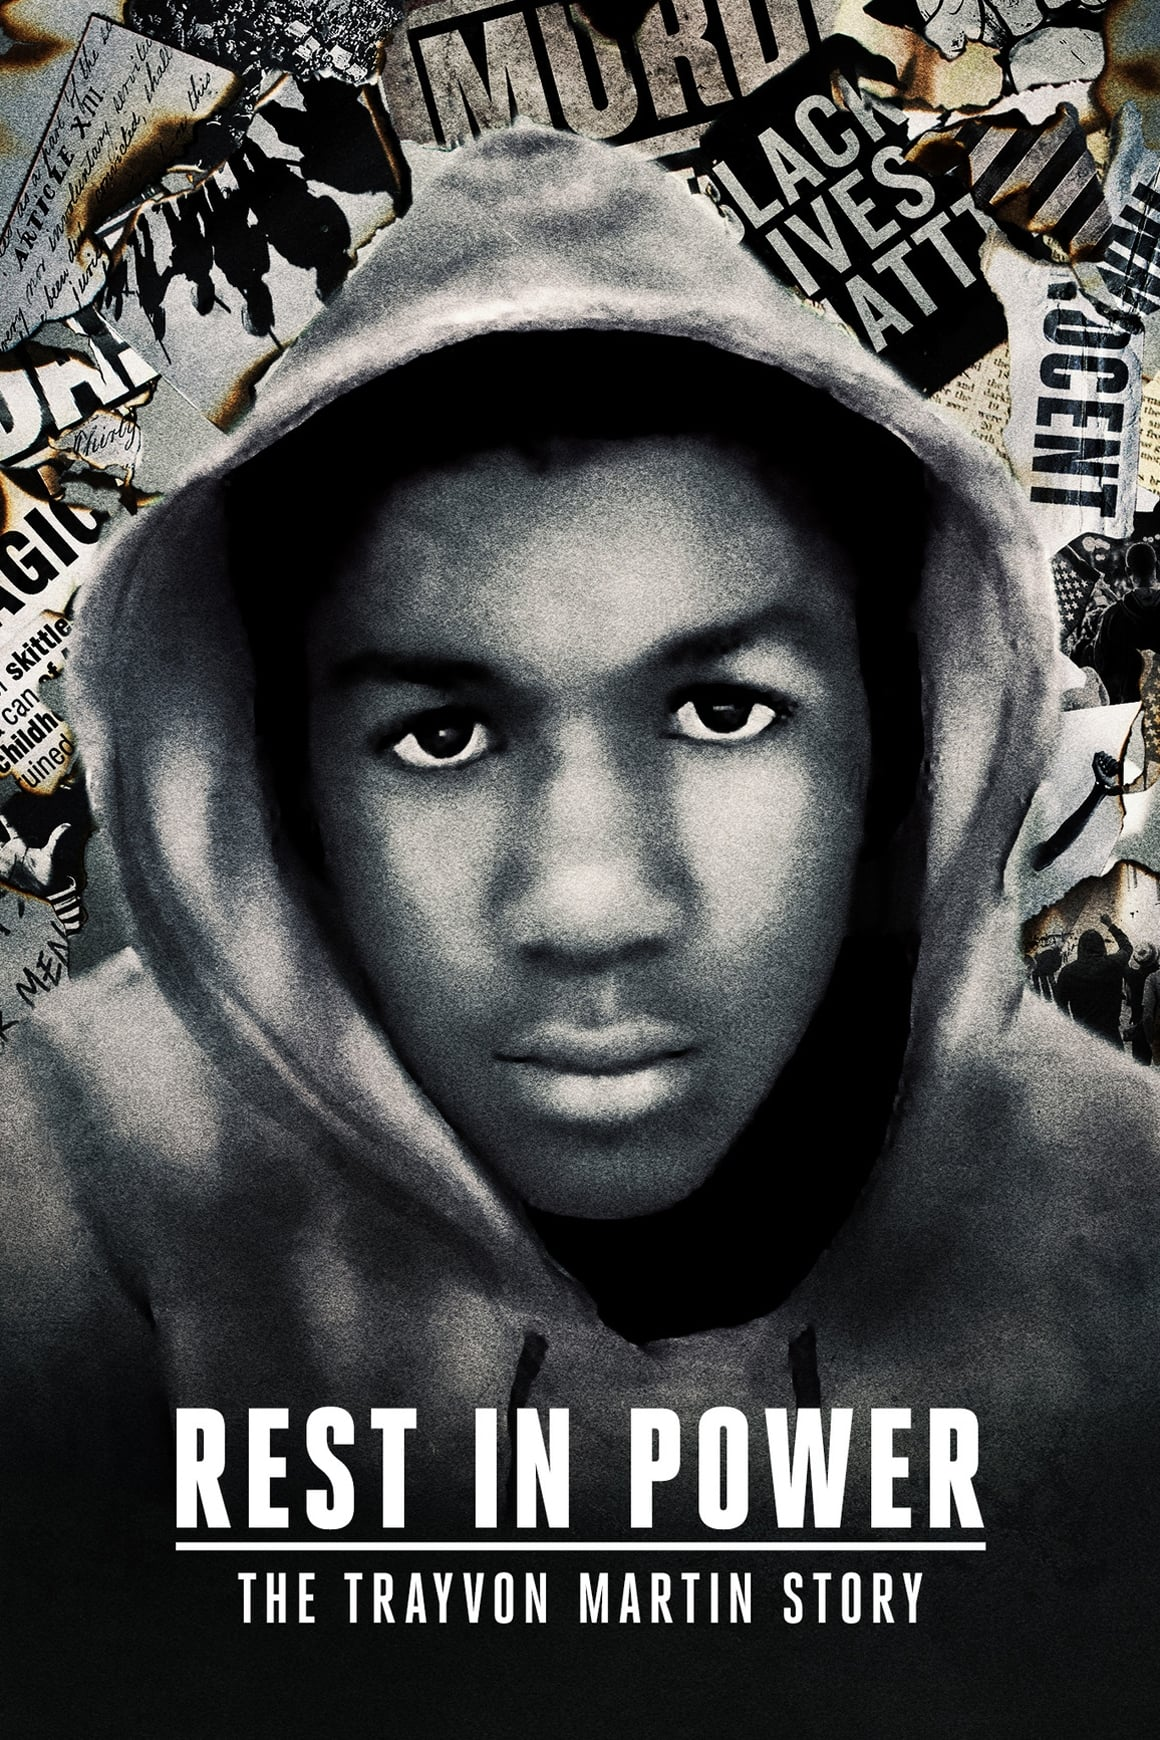 Rest in Power: The Trayvon Martin Story (2018)